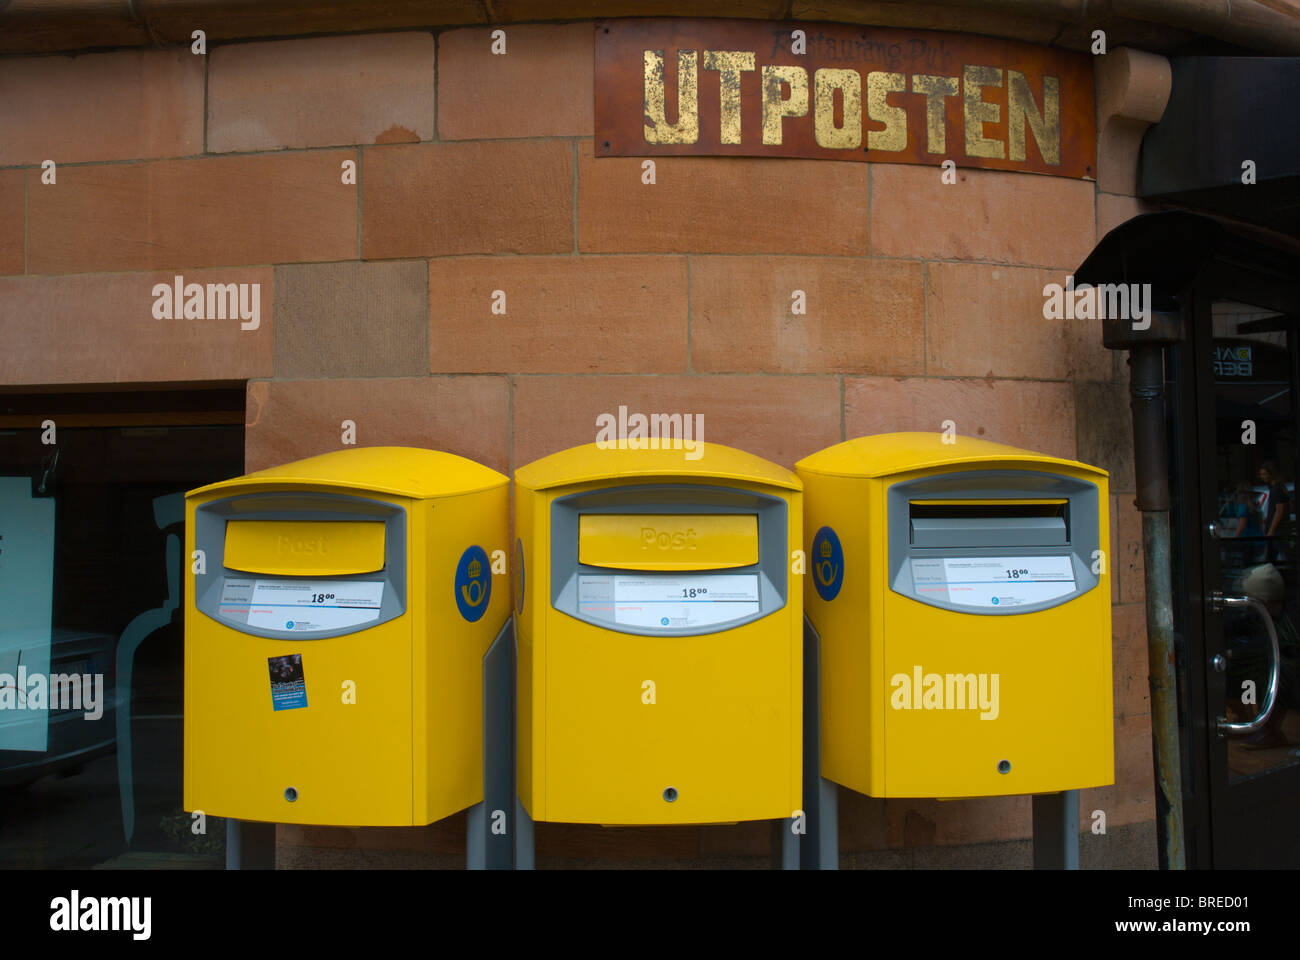 Utposten (Outpost) bar exterior with postboxes old town Helsingborg Skåne Sweden Europe - Stock Image